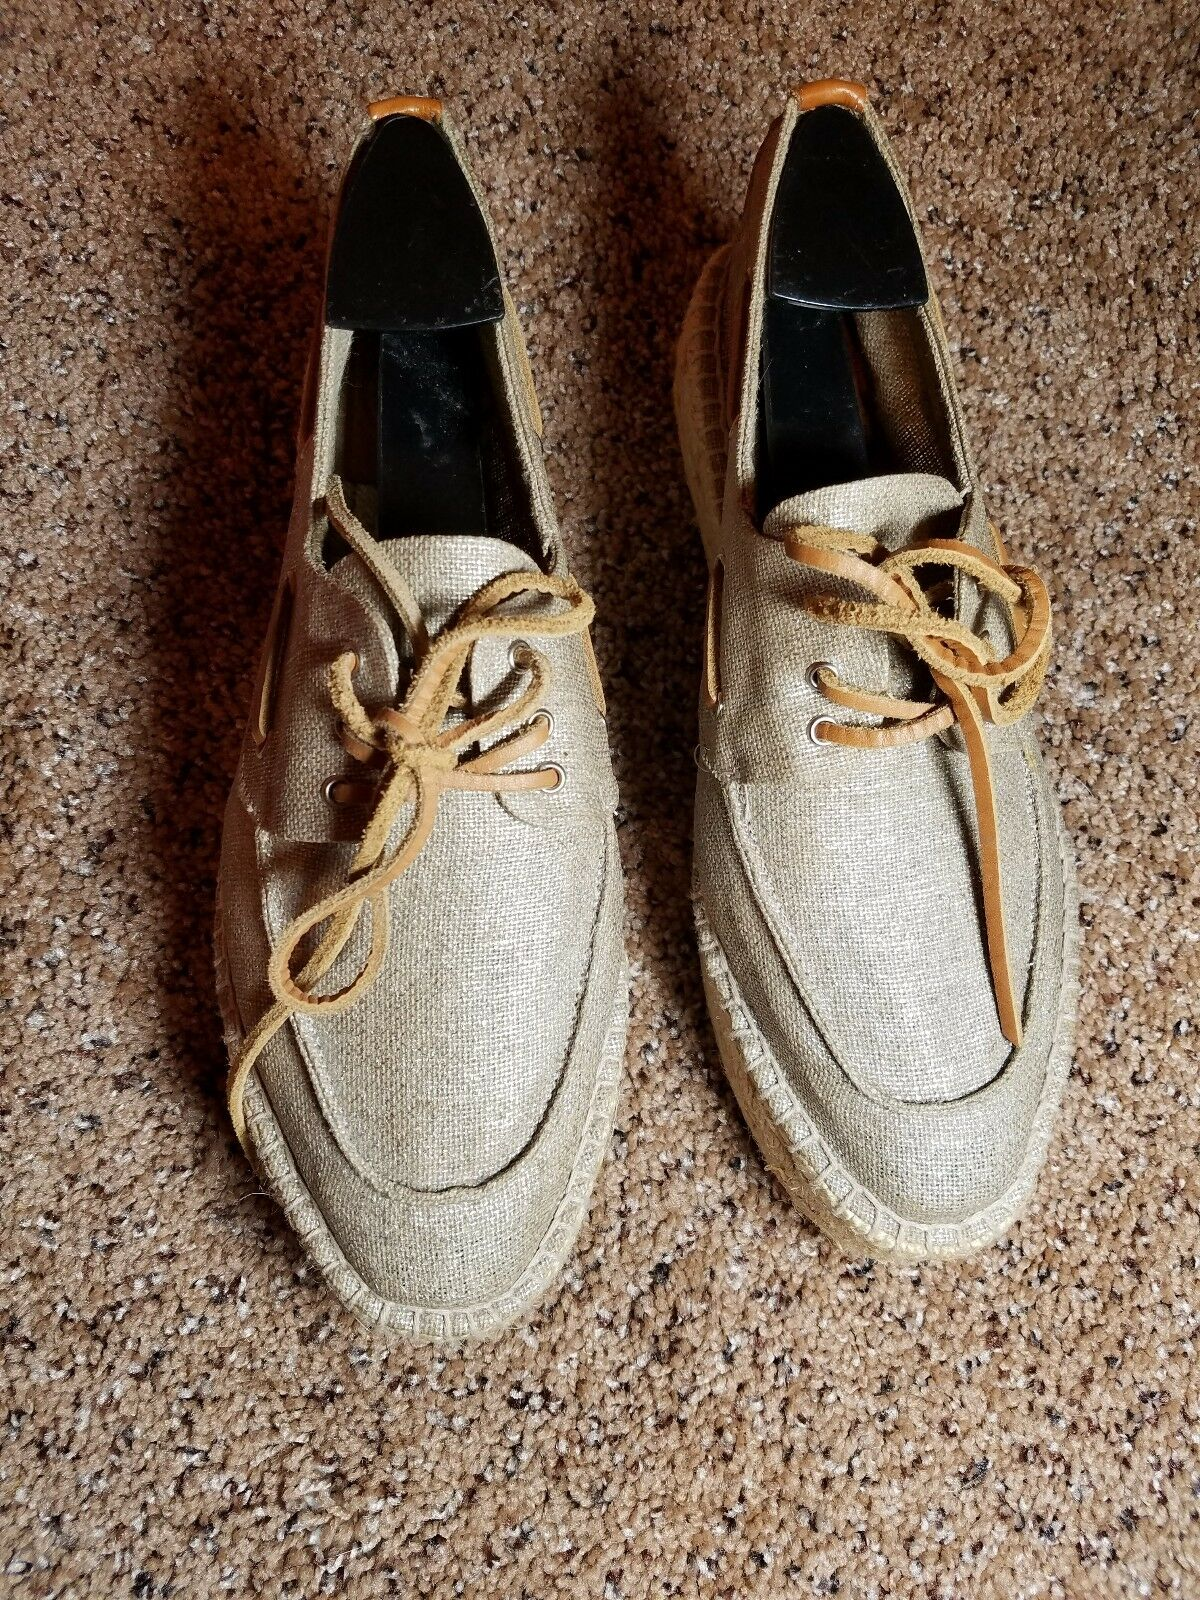 Tory Burch Cute Champagne color Espadrille Lace Up Platform Loafers in a size...